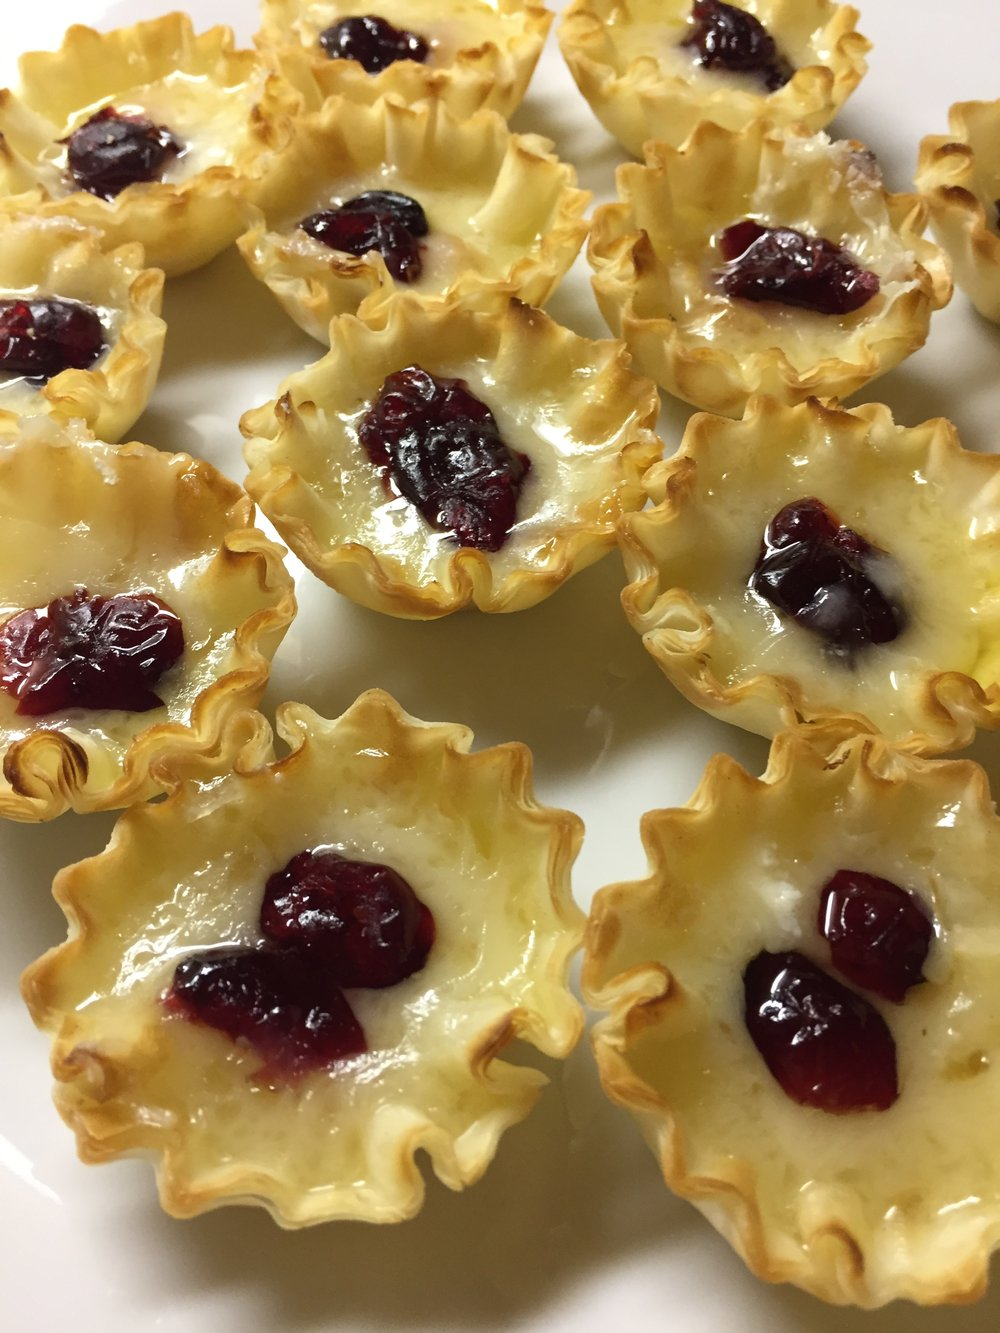 brie and cranberries as an appetizer